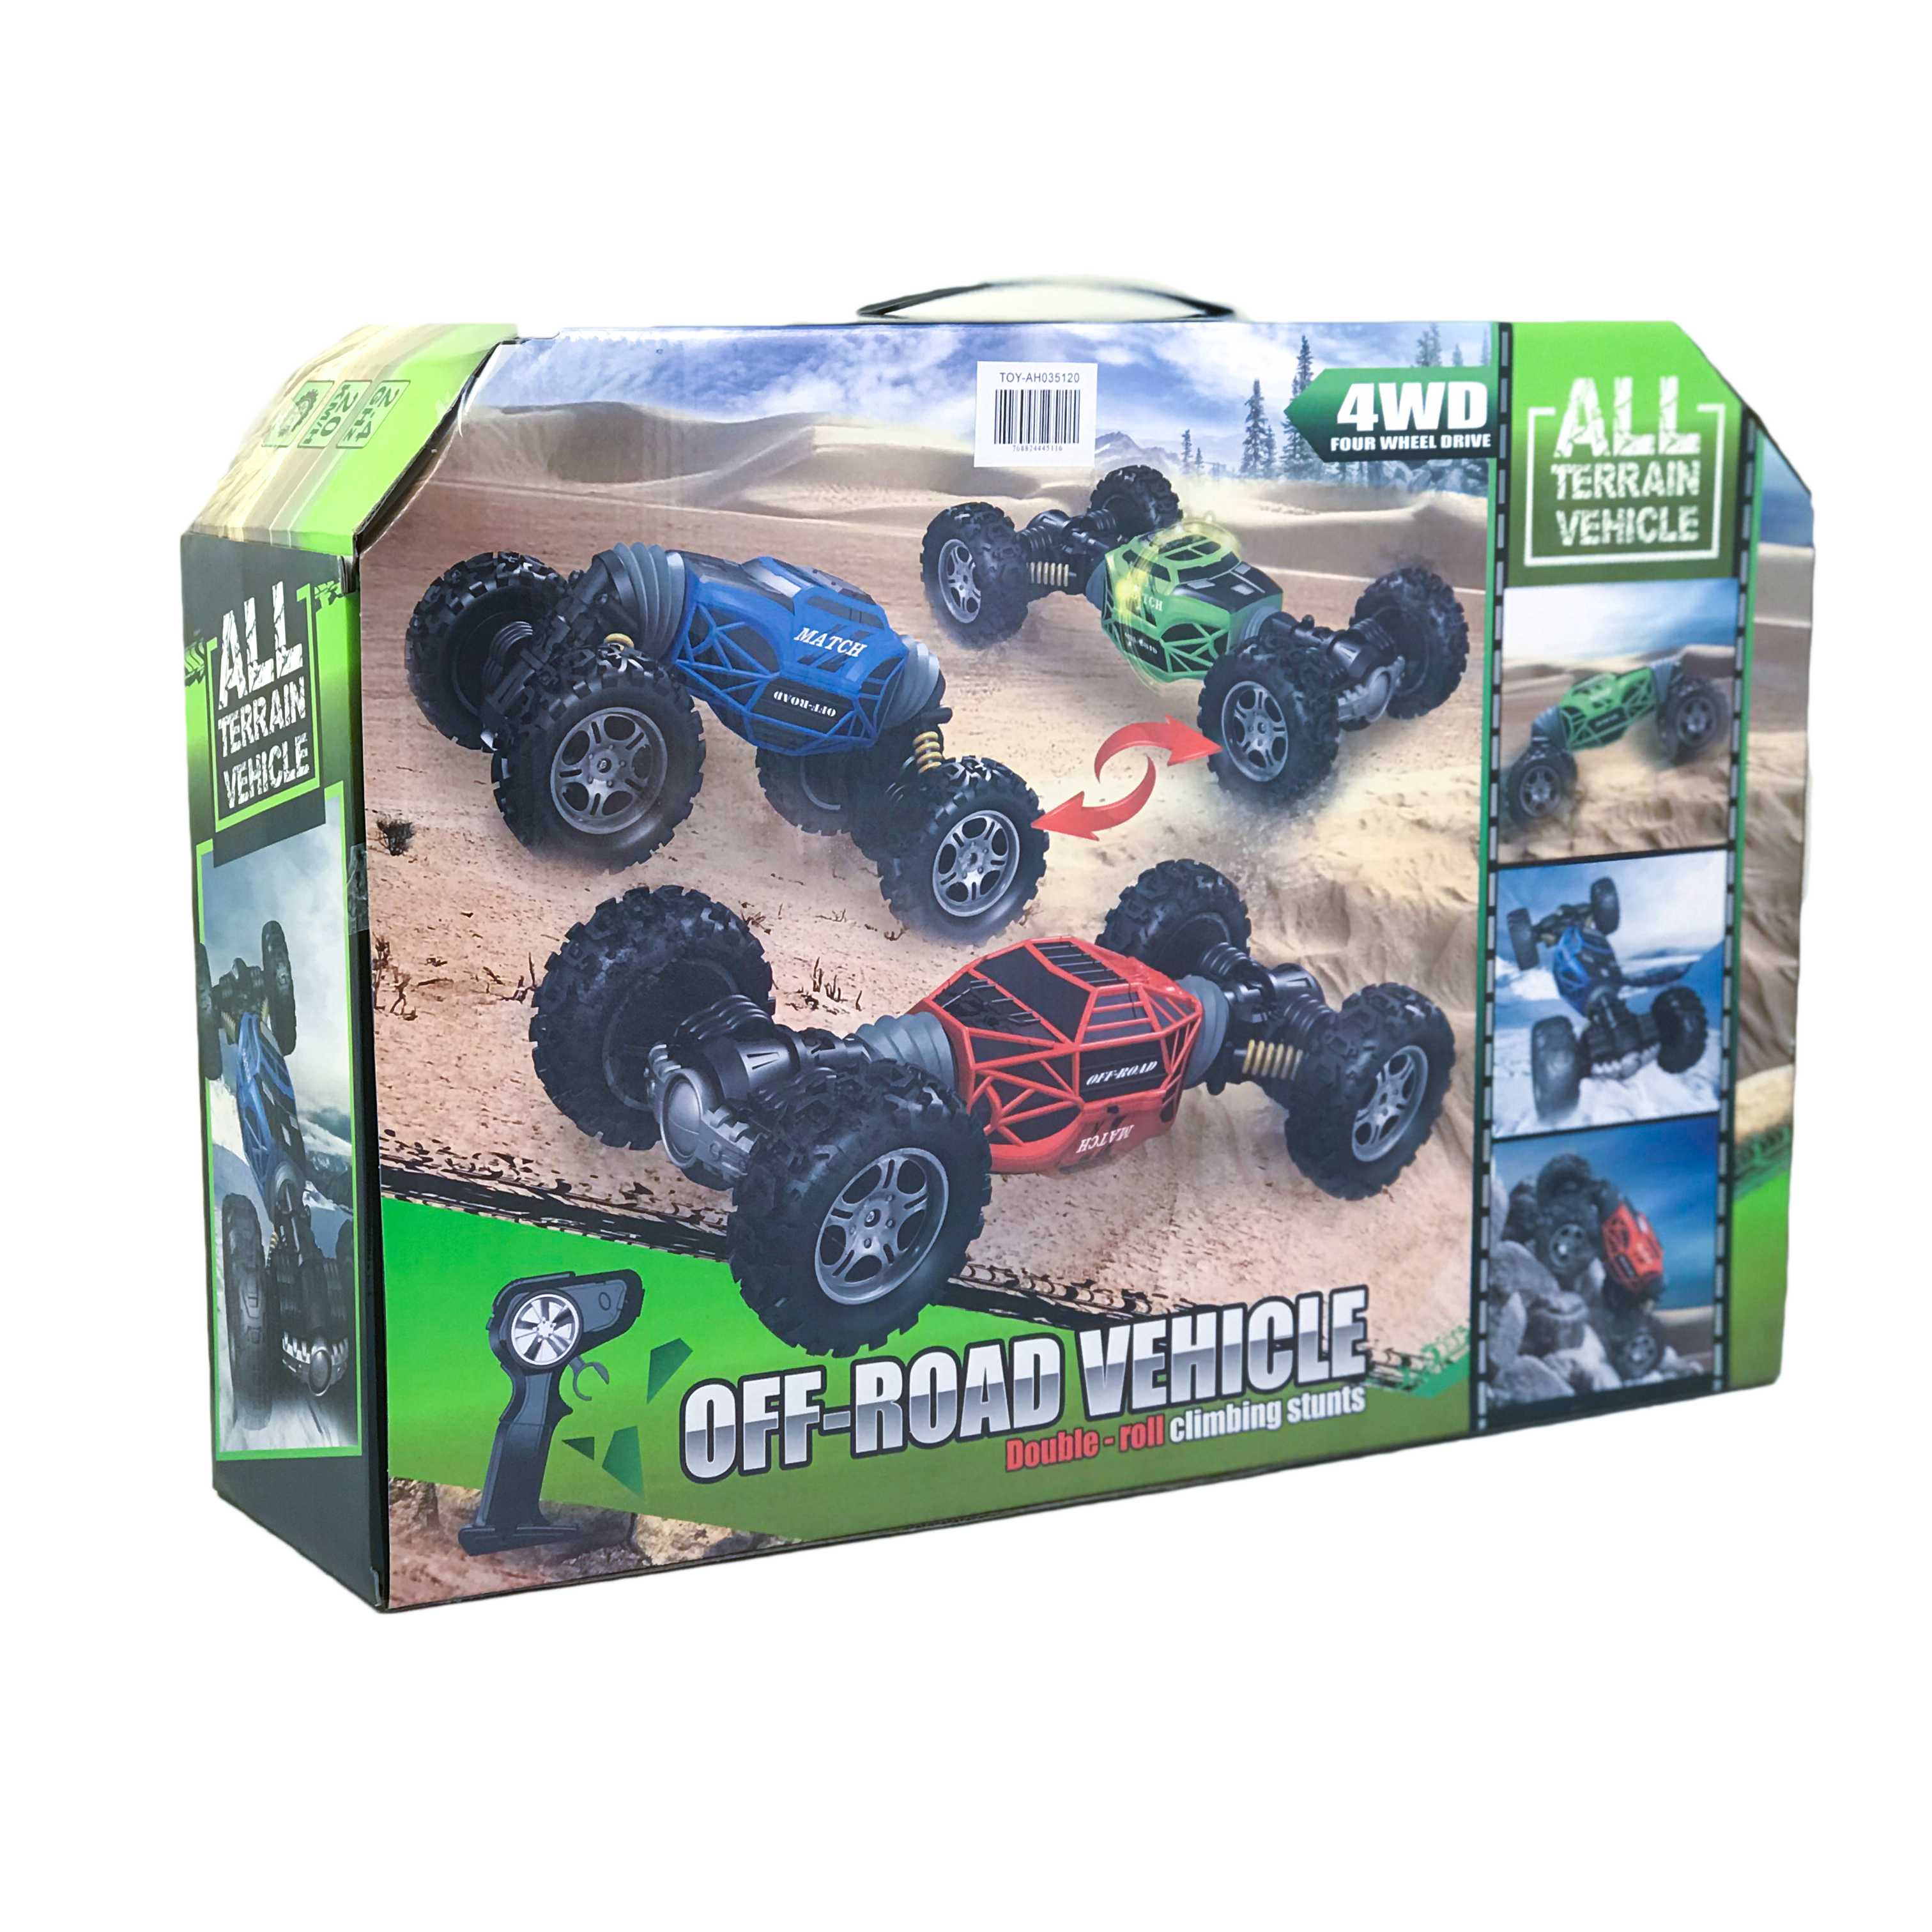 Flipo Transforming Car Off Road Vehicle